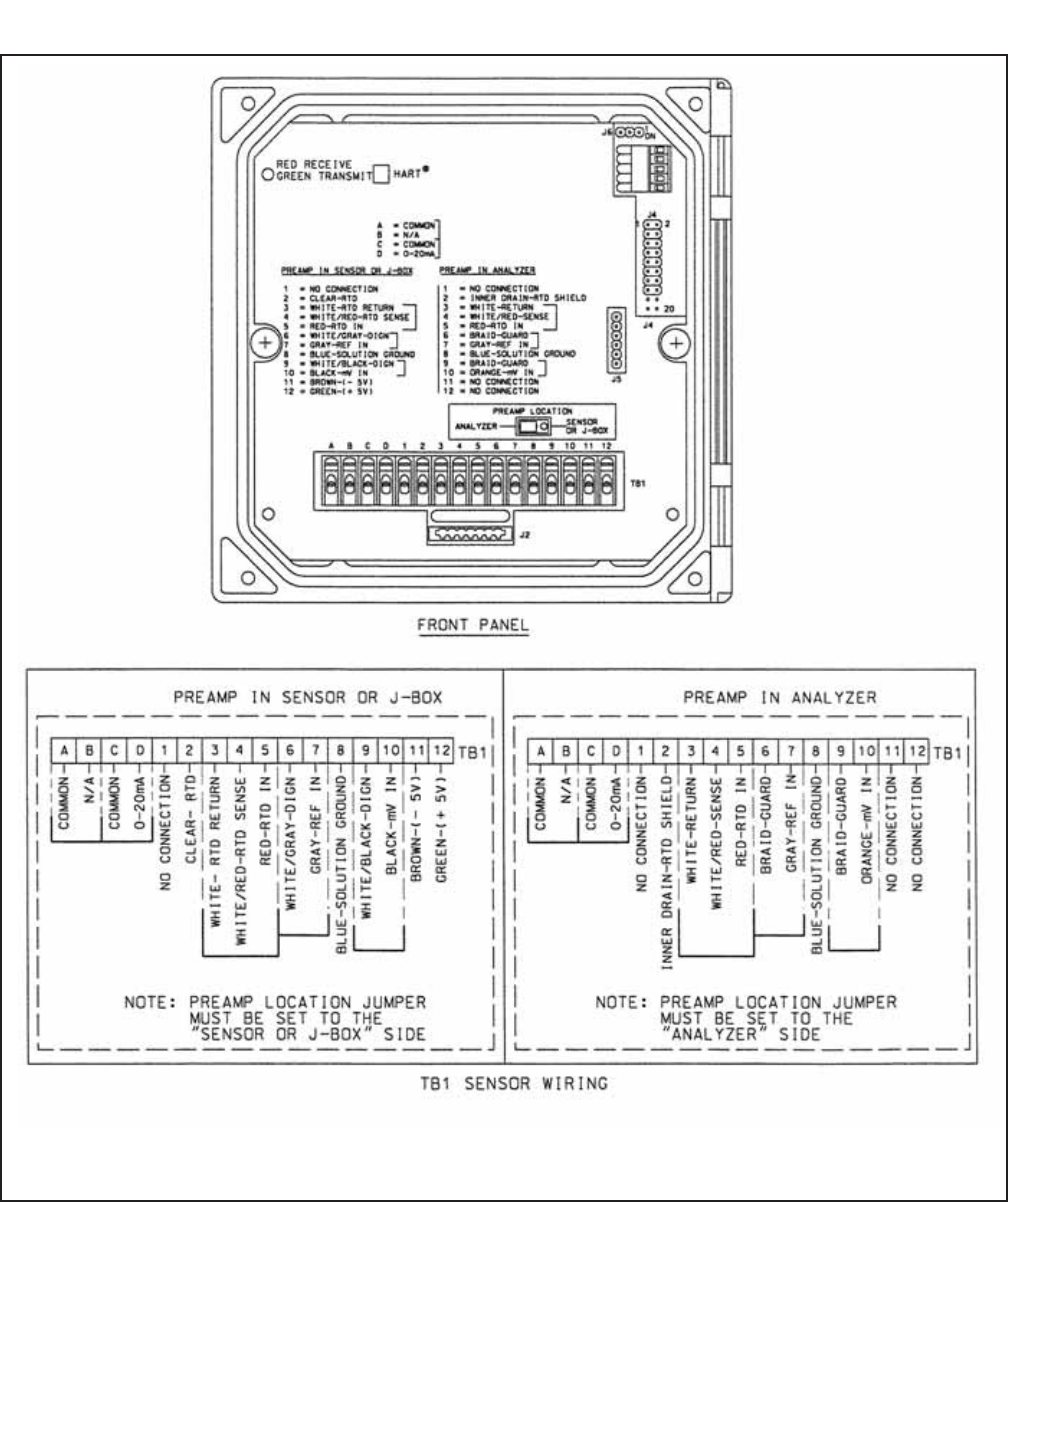 1c4cbae9 4530 492f a741 ee939b2f884d bg7 page 7 of emerson marine instruments 54e ph user guide rosemount ph probe wiring diagram at creativeand.co